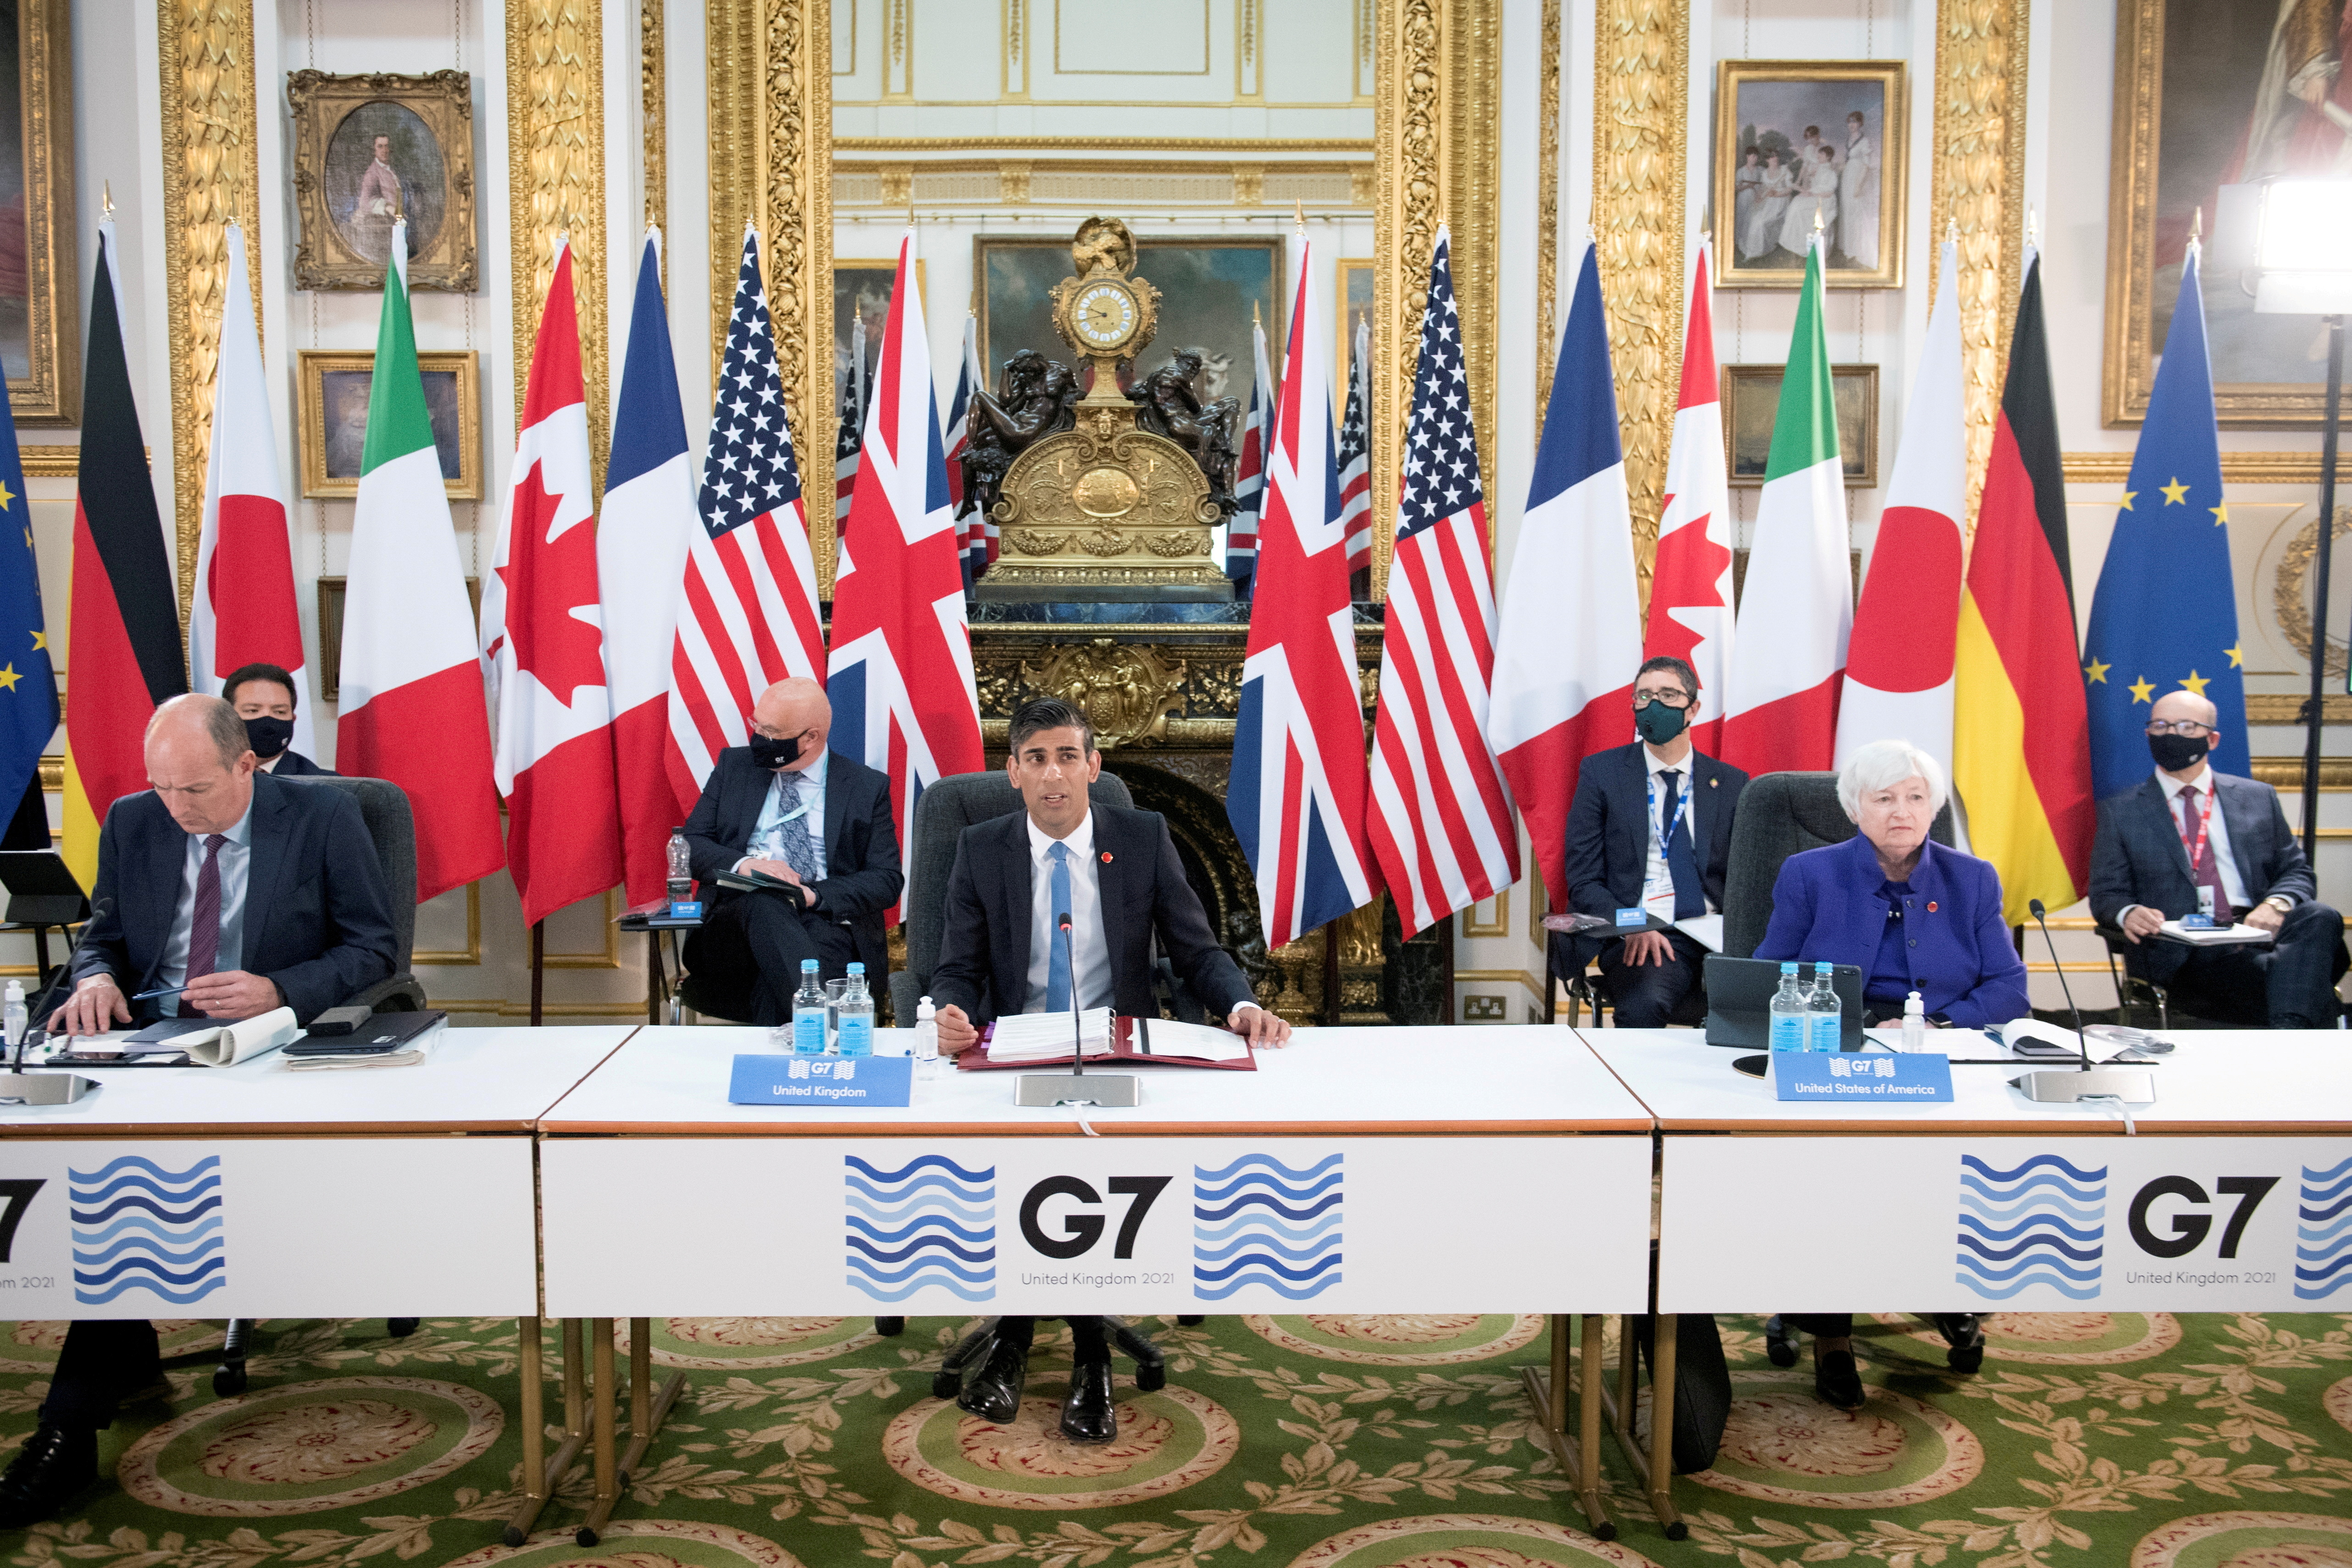 Britain's Chancellor of the Exchequer Rishi Sunak speaks at a meeting of finance ministers from across the G7 nations ahead of the G7 leaders' summit, at Lancaster House in London, Britain June 4, 2021. Stefan Rousseau/PA Wire/Pool via REUTERS//File Photo/File Photo